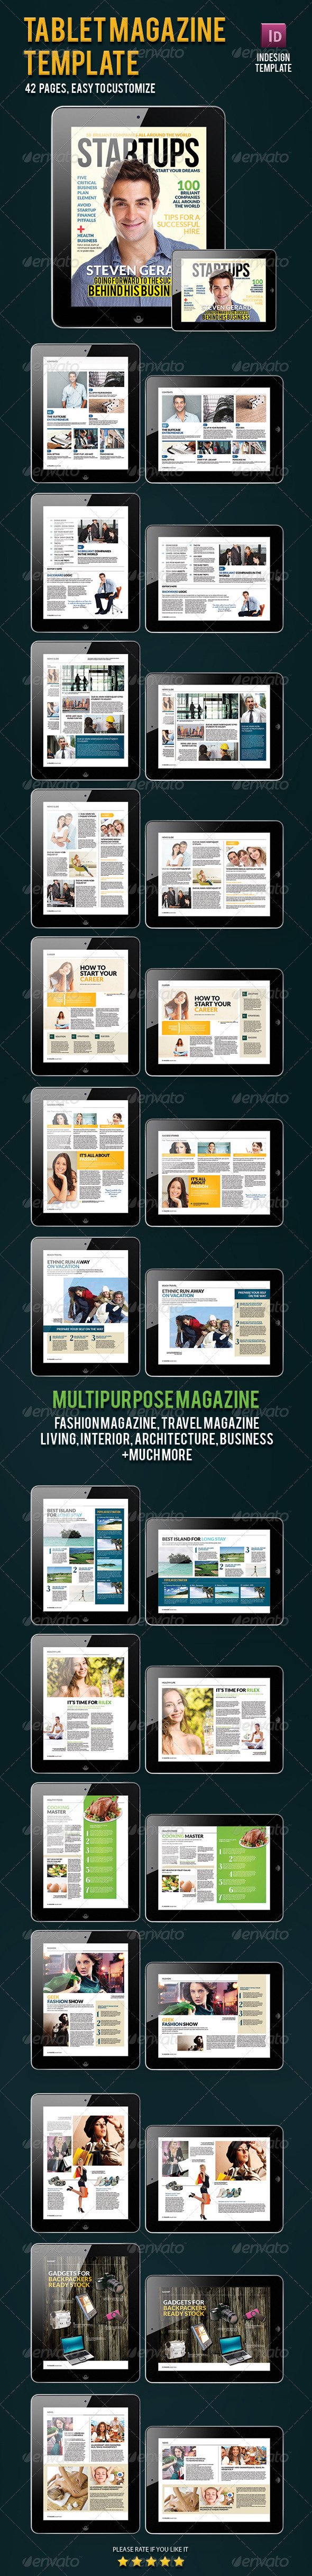 Magazine Template for Tablet - Magazines Print Templates